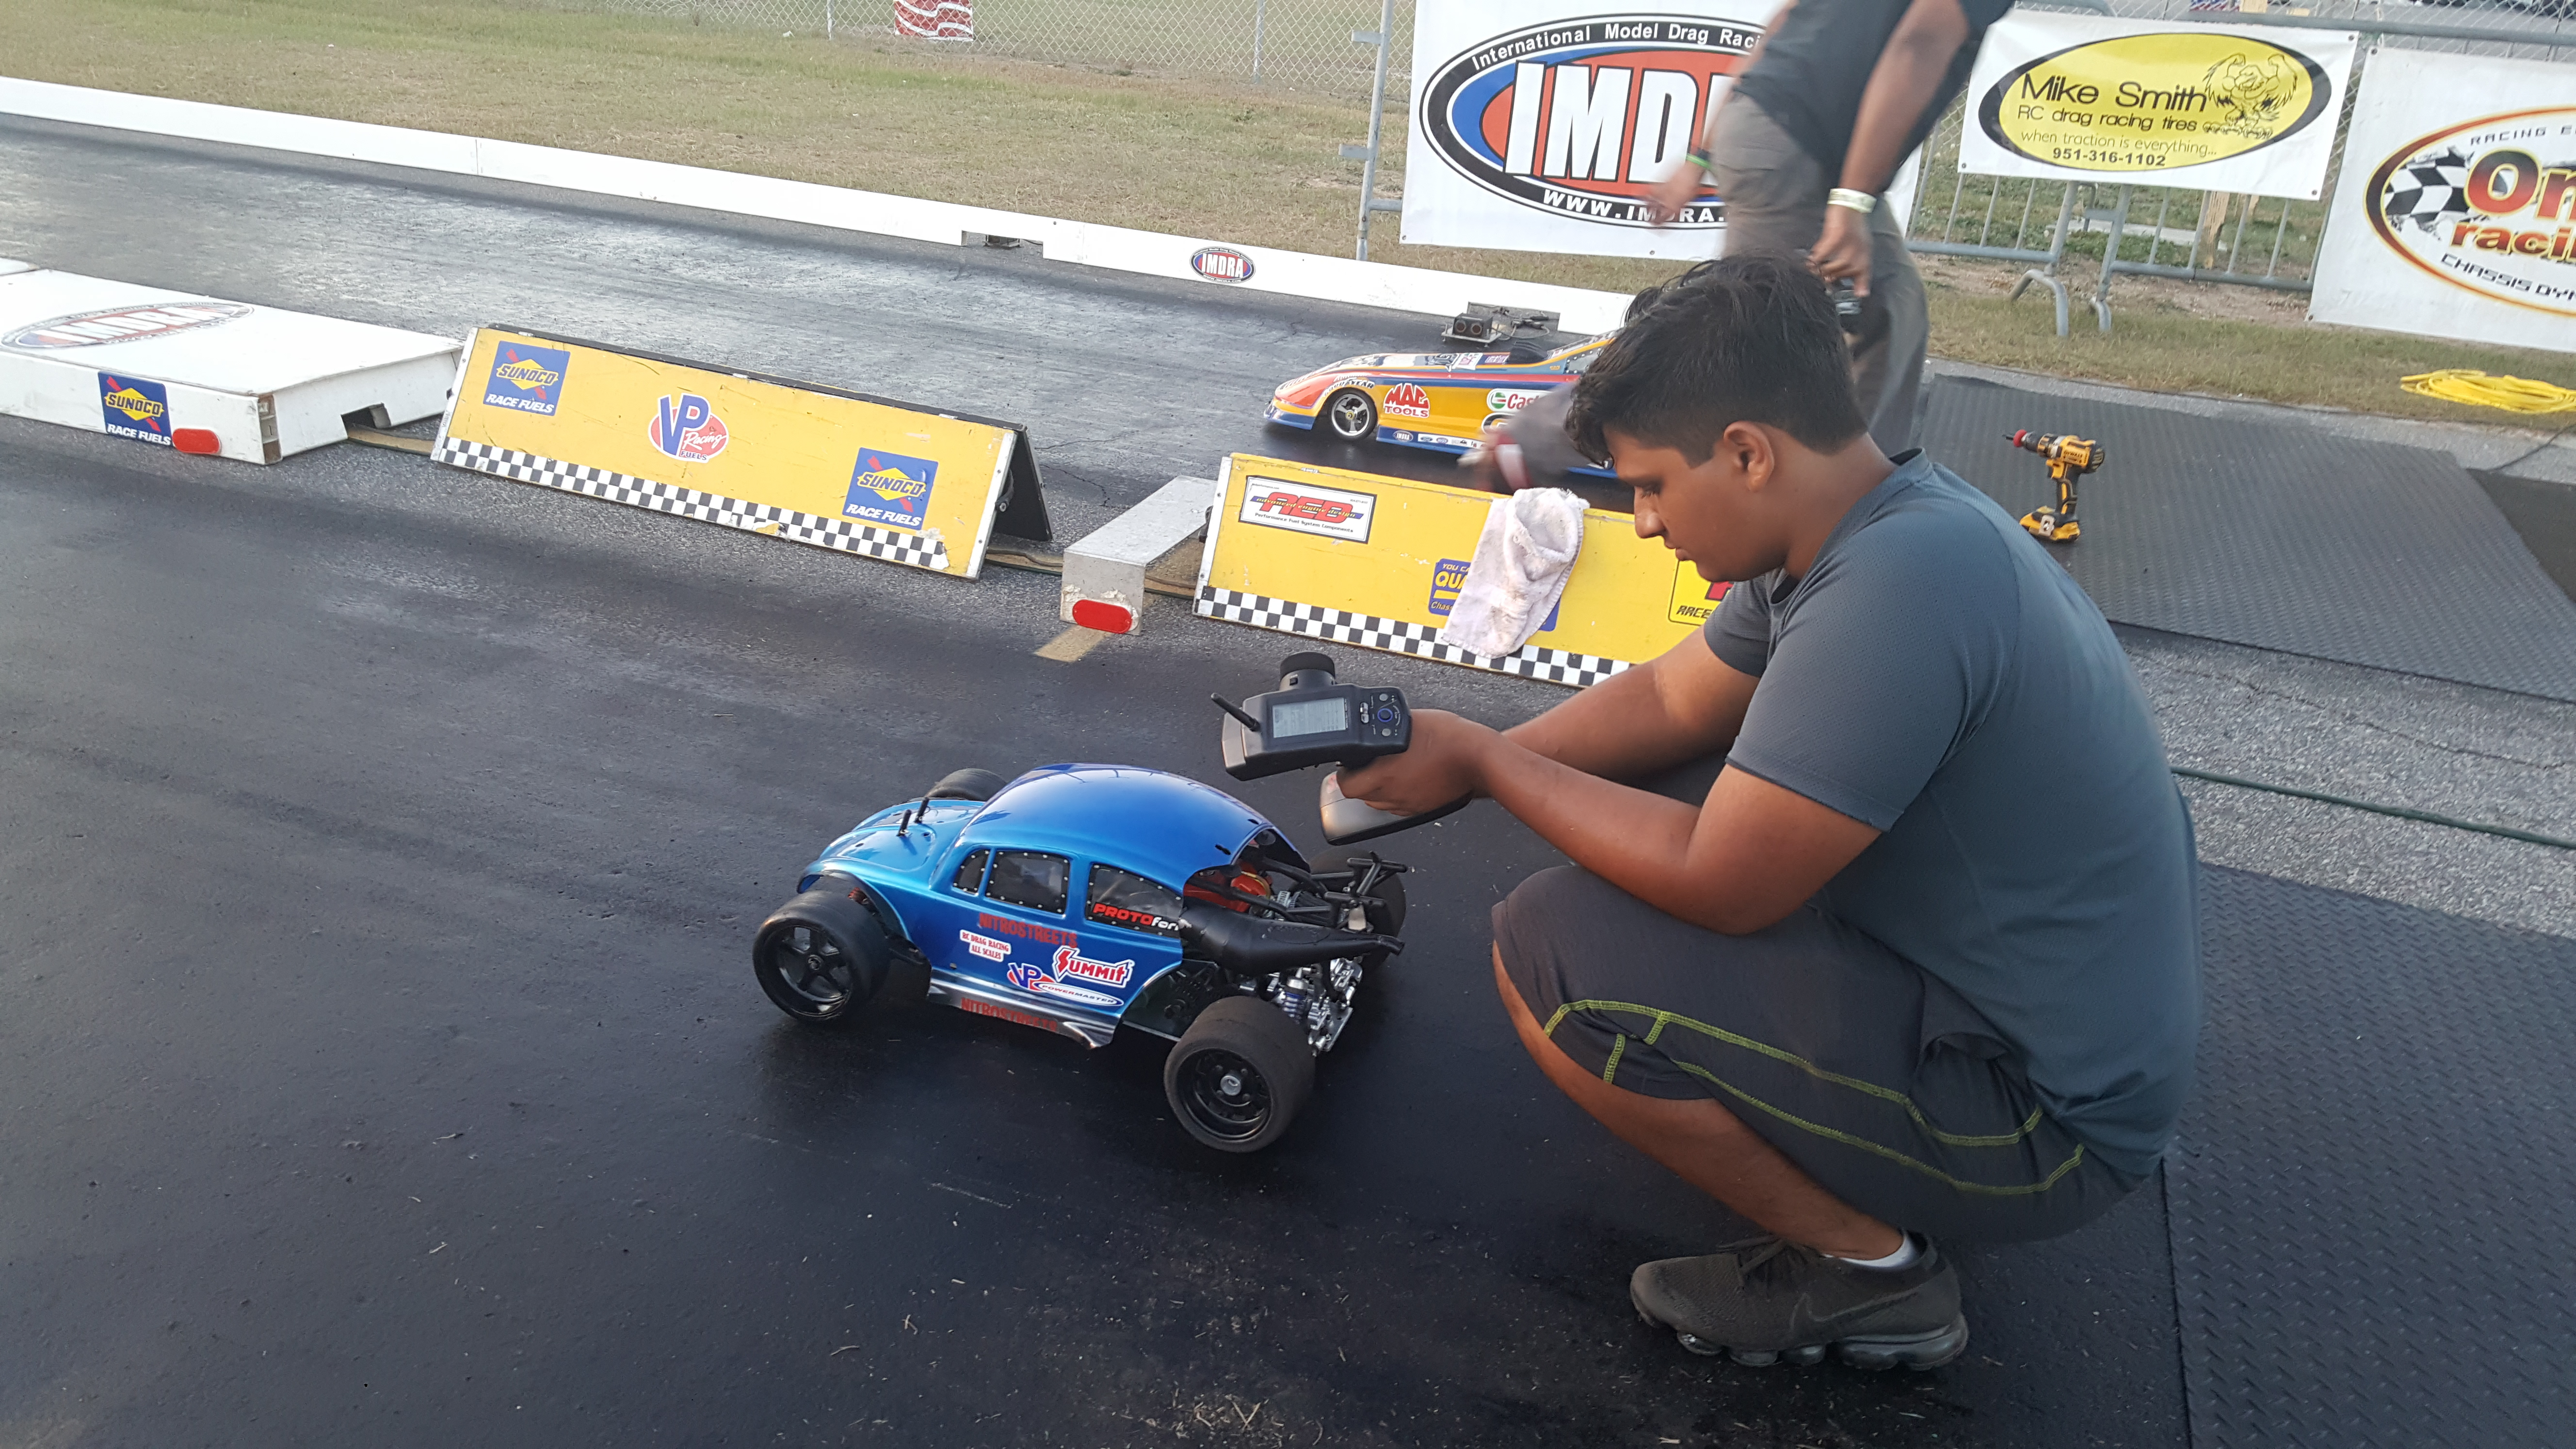 2017 Imdra World Finals Rockingham North Carolina Rc Drag Try Watching This Video On Youtubecom Or Enable Javascript If It Is Disabled In Your Browser